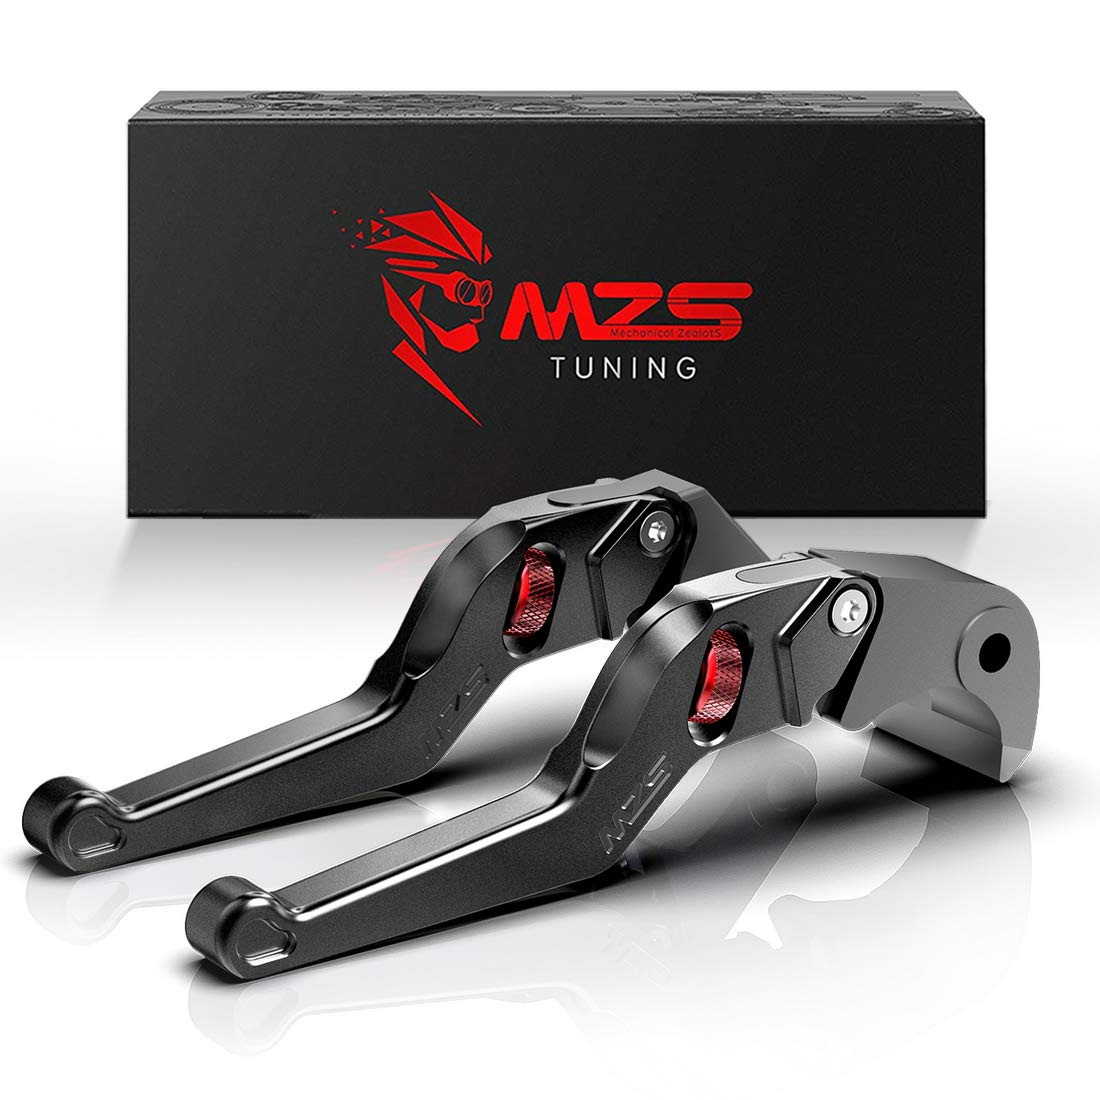 MZS Black Short Levers Wheel Roller Brake Clutch Adjustment for FZ-07 FZ07 MT-07 MT07 FZ-09 FZ09 MT09 FJ-09 FJ09 MT-09 Tracer FZ1 FZ6 Fazer FZ6R FZ8 XJ6 Diversion XSR 700 900 ABS by MZS